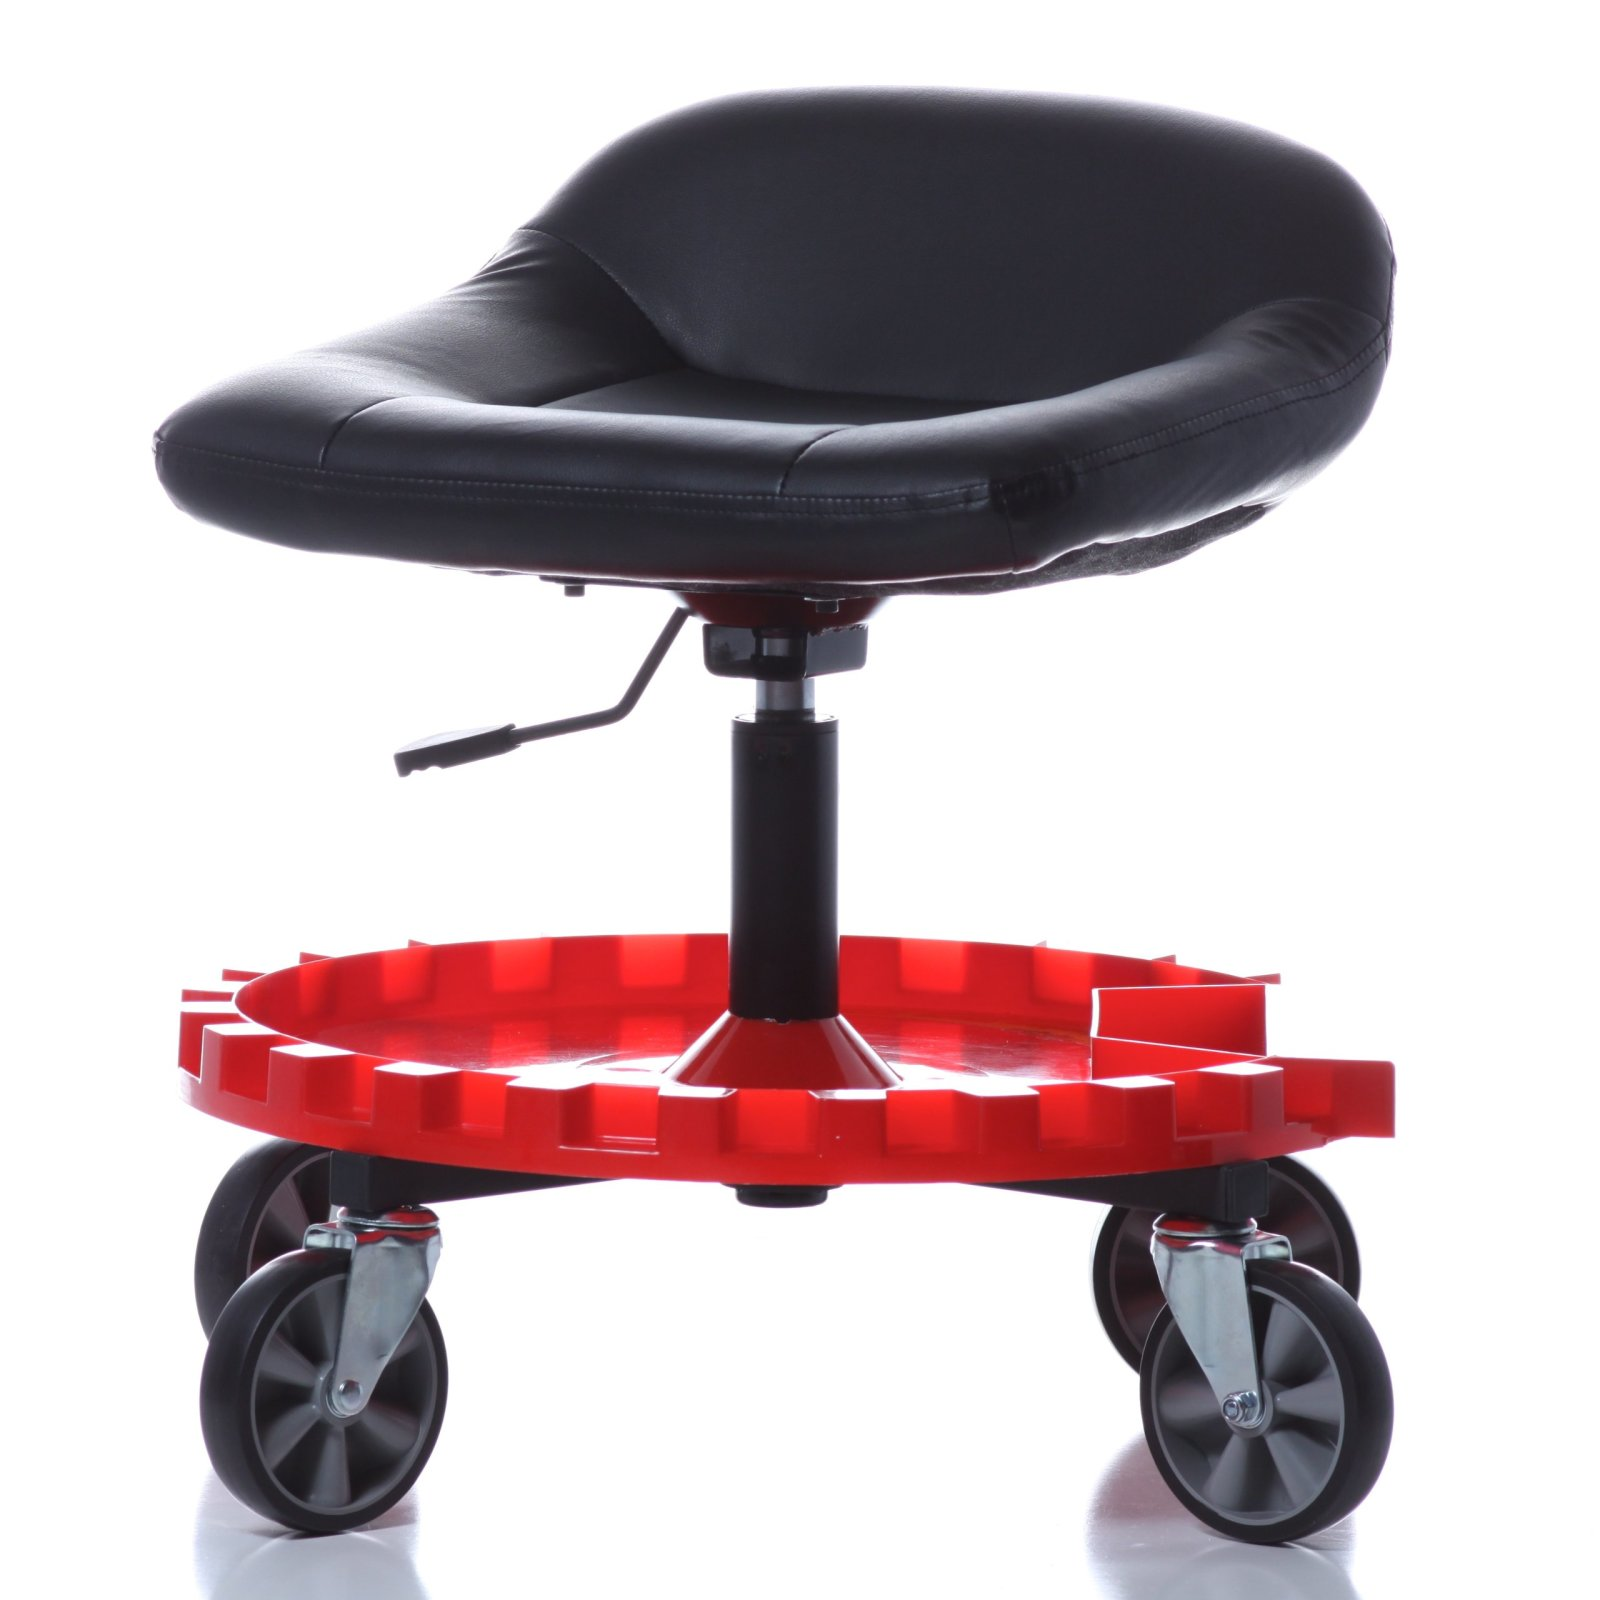 Mechanics Creeper Seat Rolling Work Stool Garage Chair Tool Tray Auto Shop  sc 1 st  eBay & Mechanics Creeper Seat Rolling Work Stool Garage Chair Tool Tray ... islam-shia.org